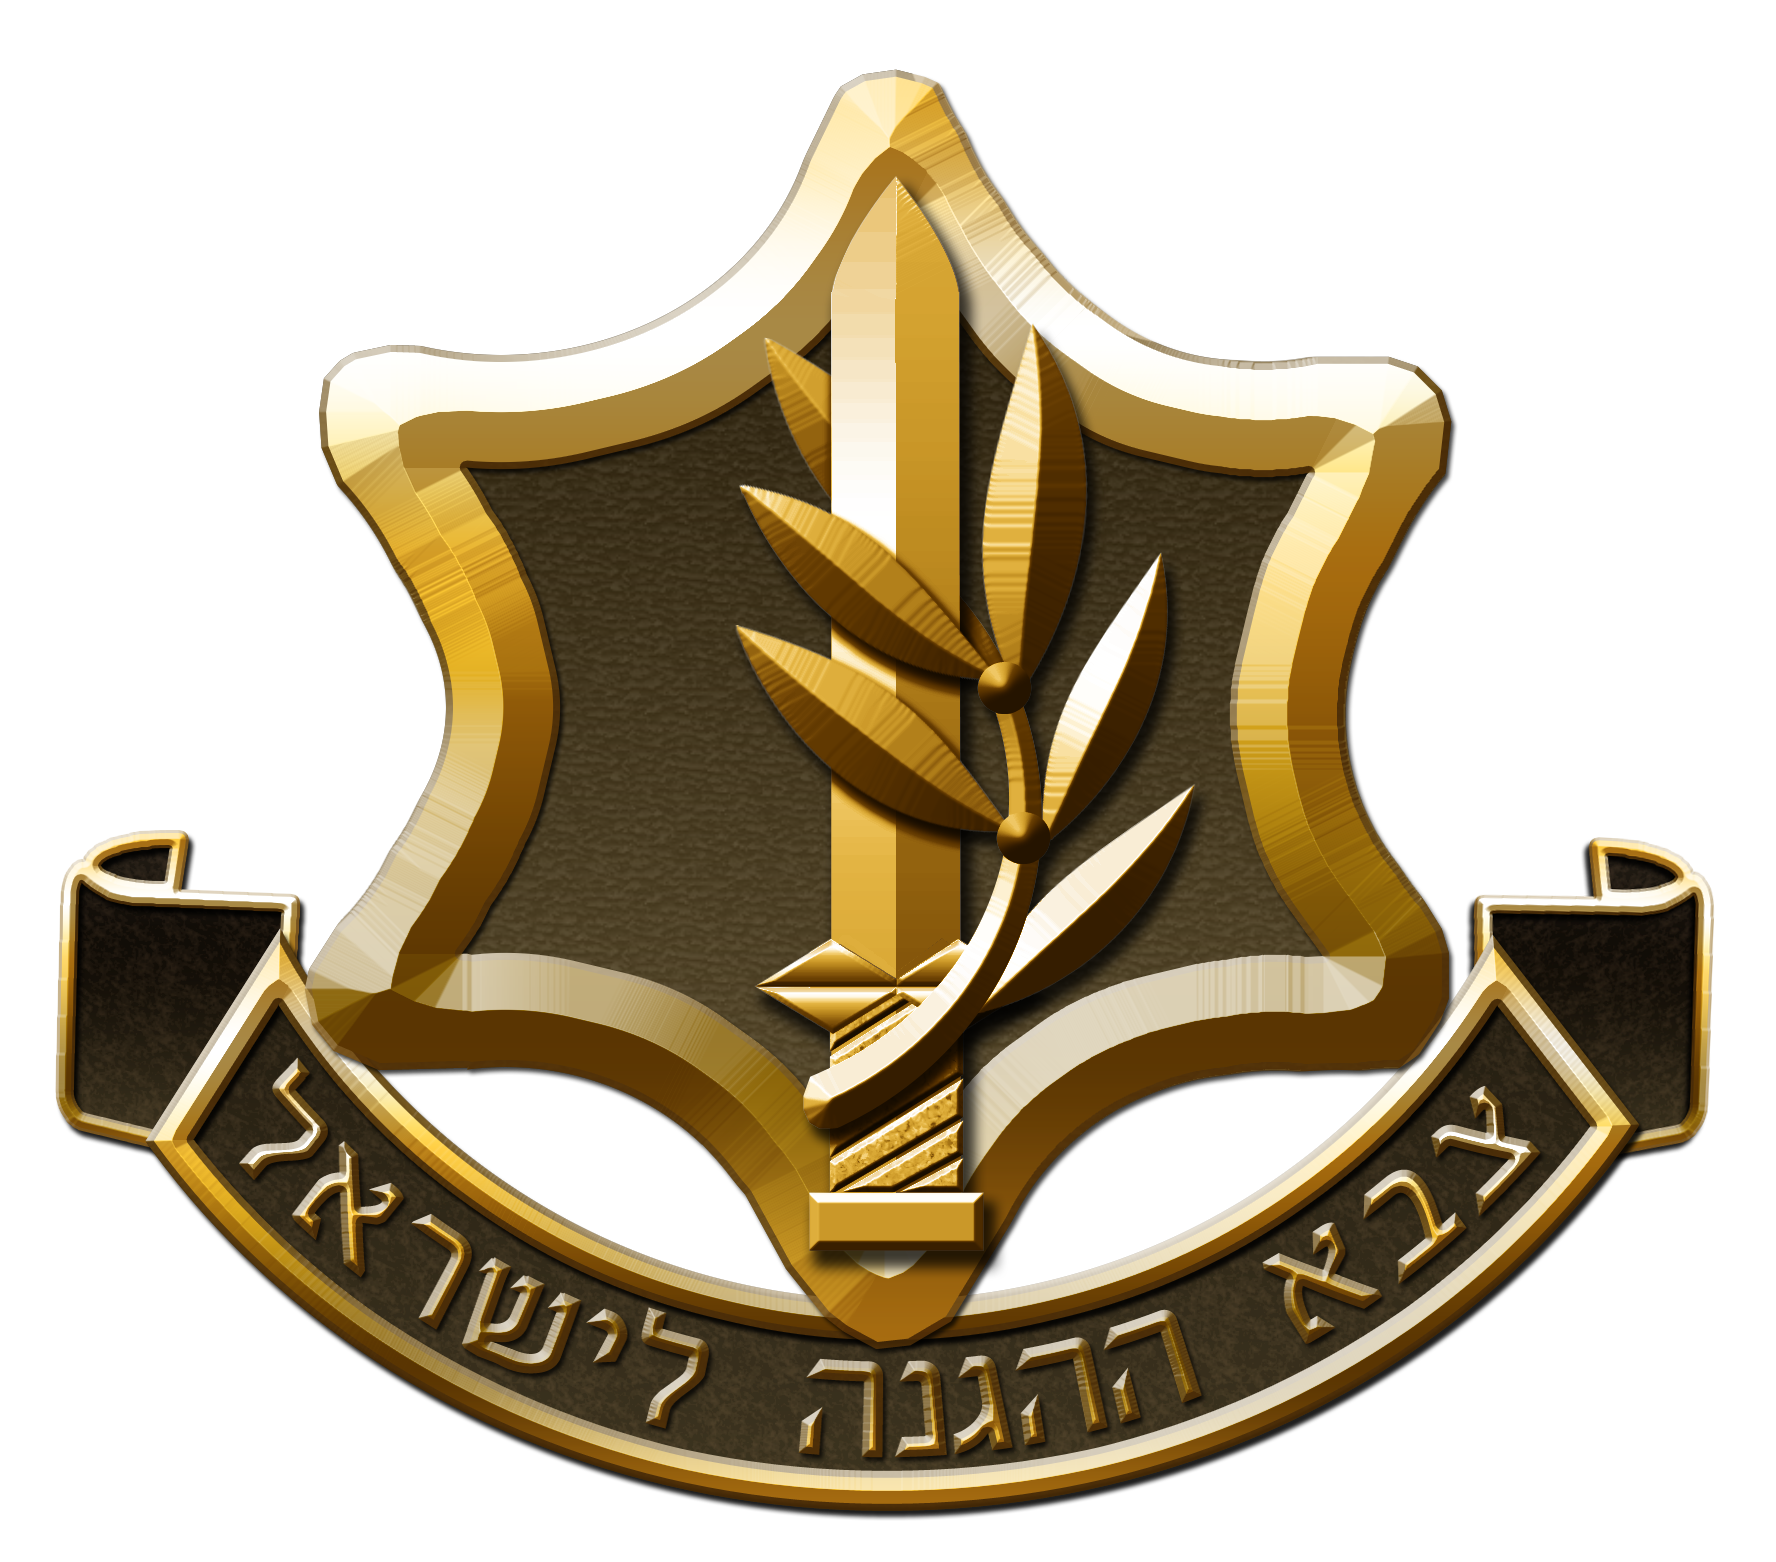 http://upload.wikimedia.org/wikipedia/he/f/fa/IDF_new.png